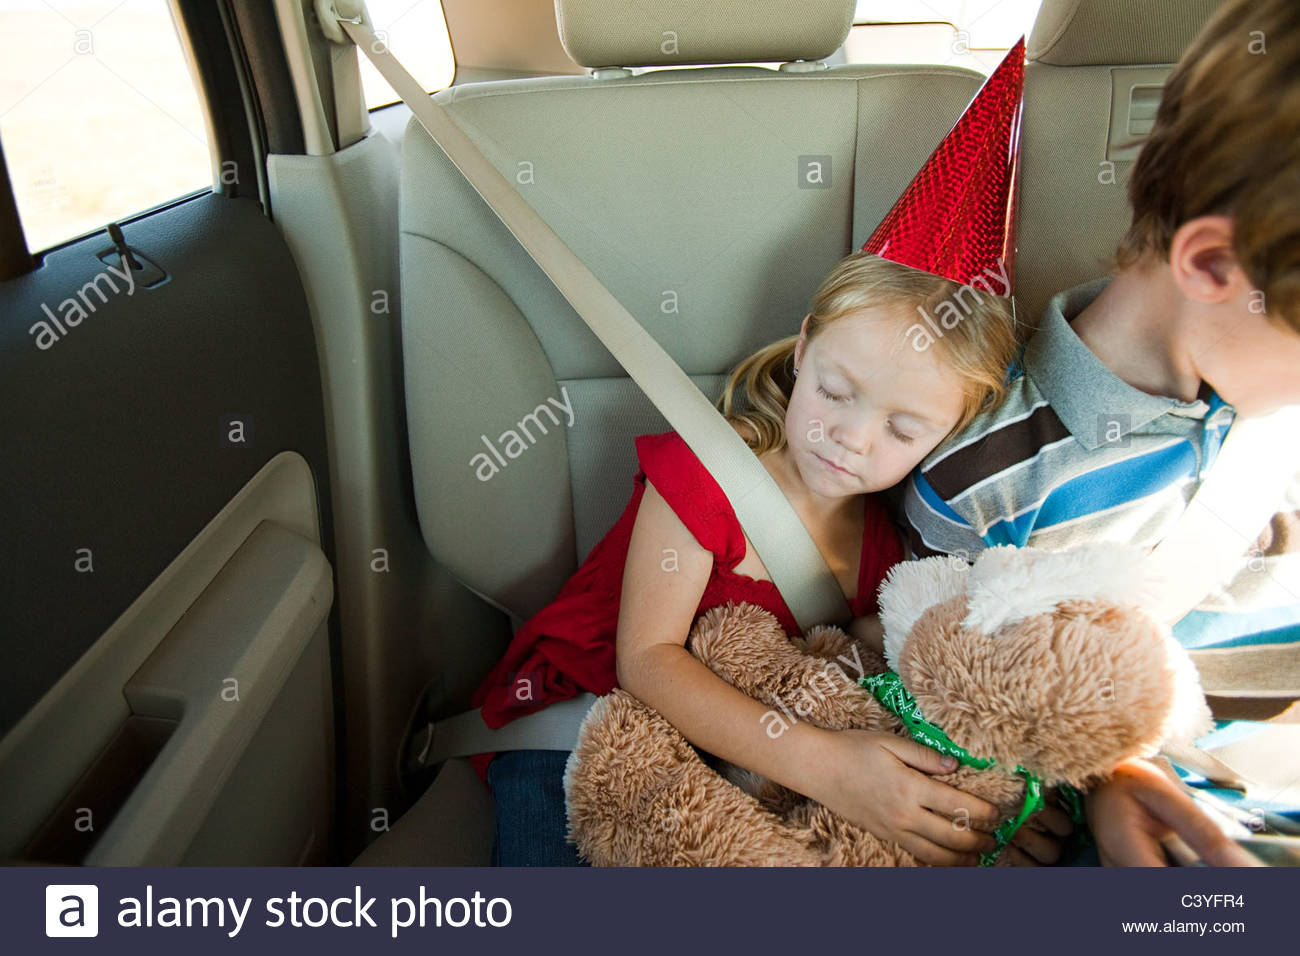 Two children in back seat of car, girl asleep - Stock Image